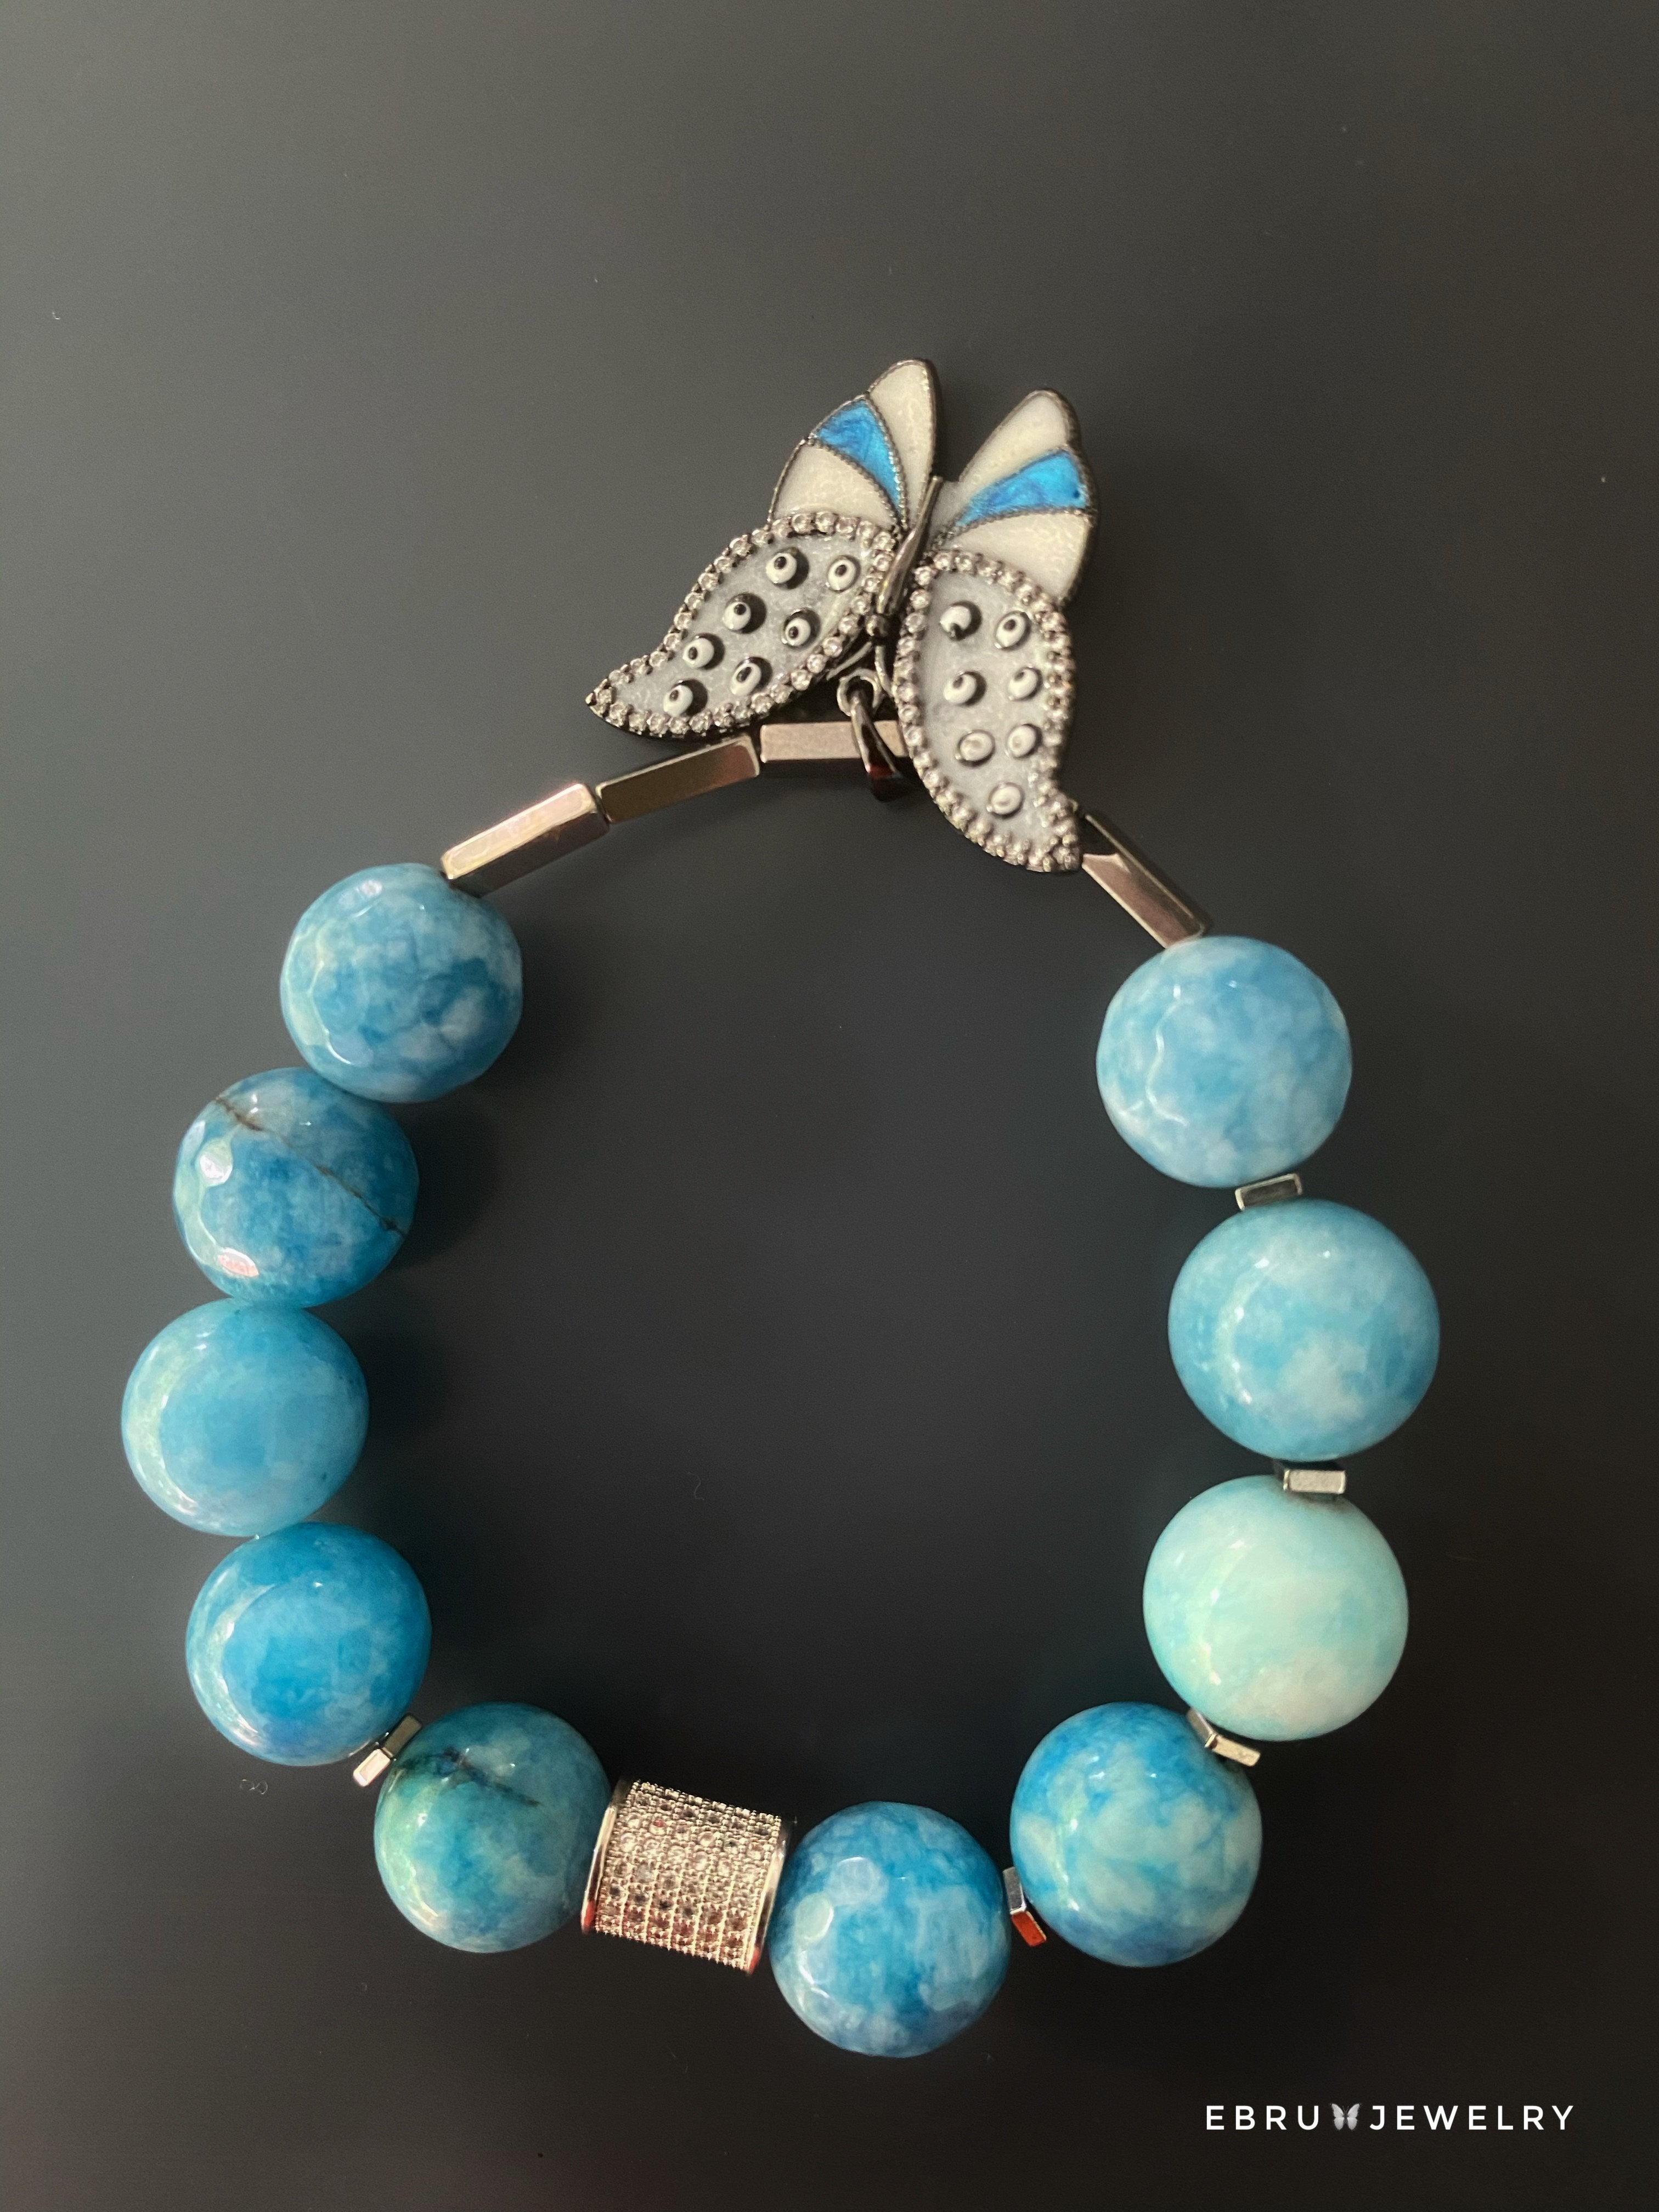 Blue Butterfly Bracelet - EBRU JEWELRY